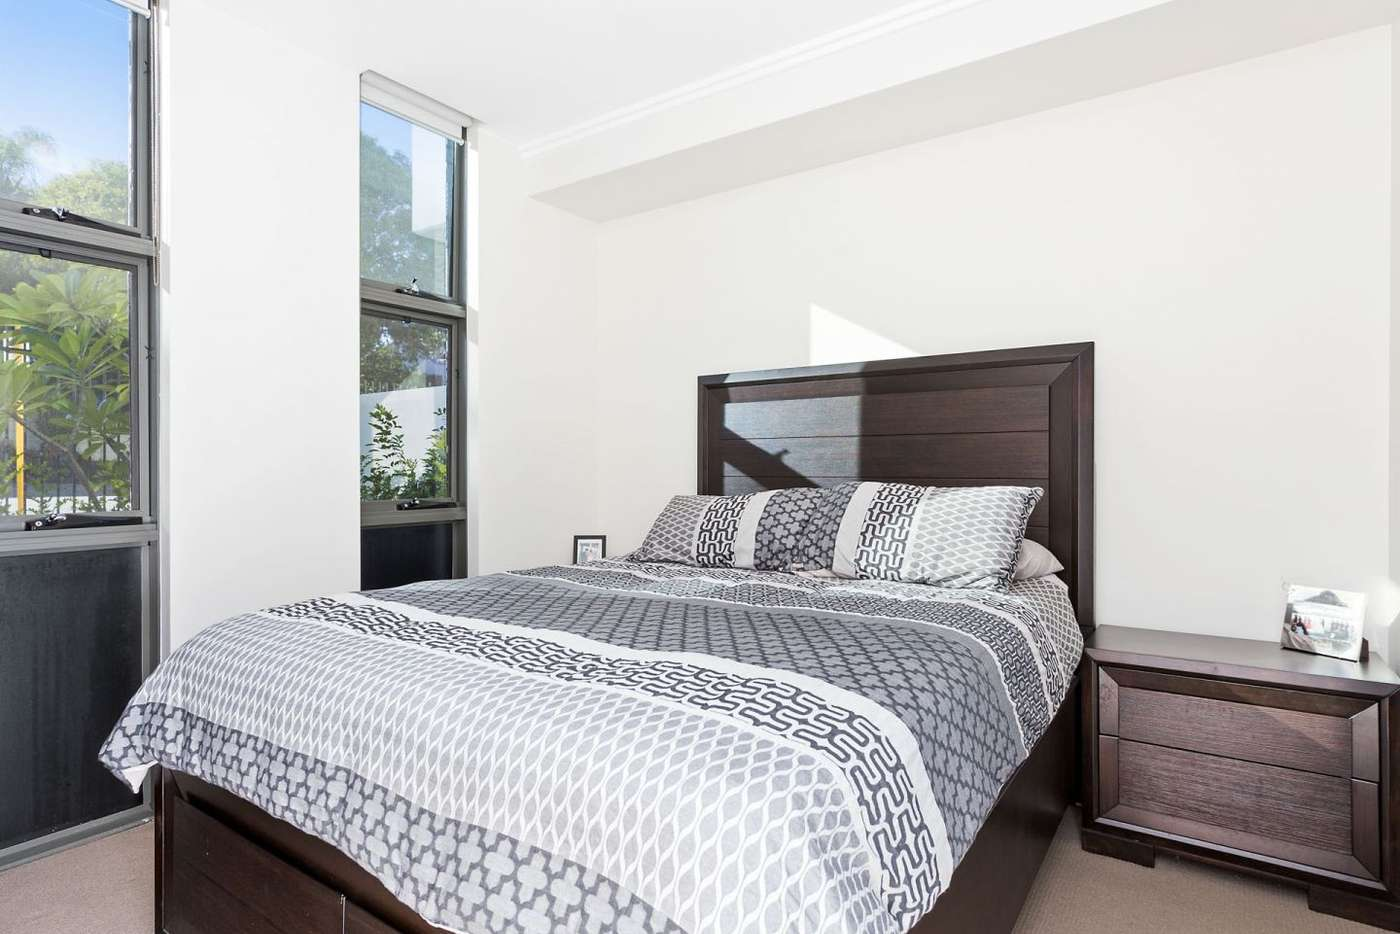 Seventh view of Homely apartment listing, 1/1 Joseph Street, Maylands WA 6051